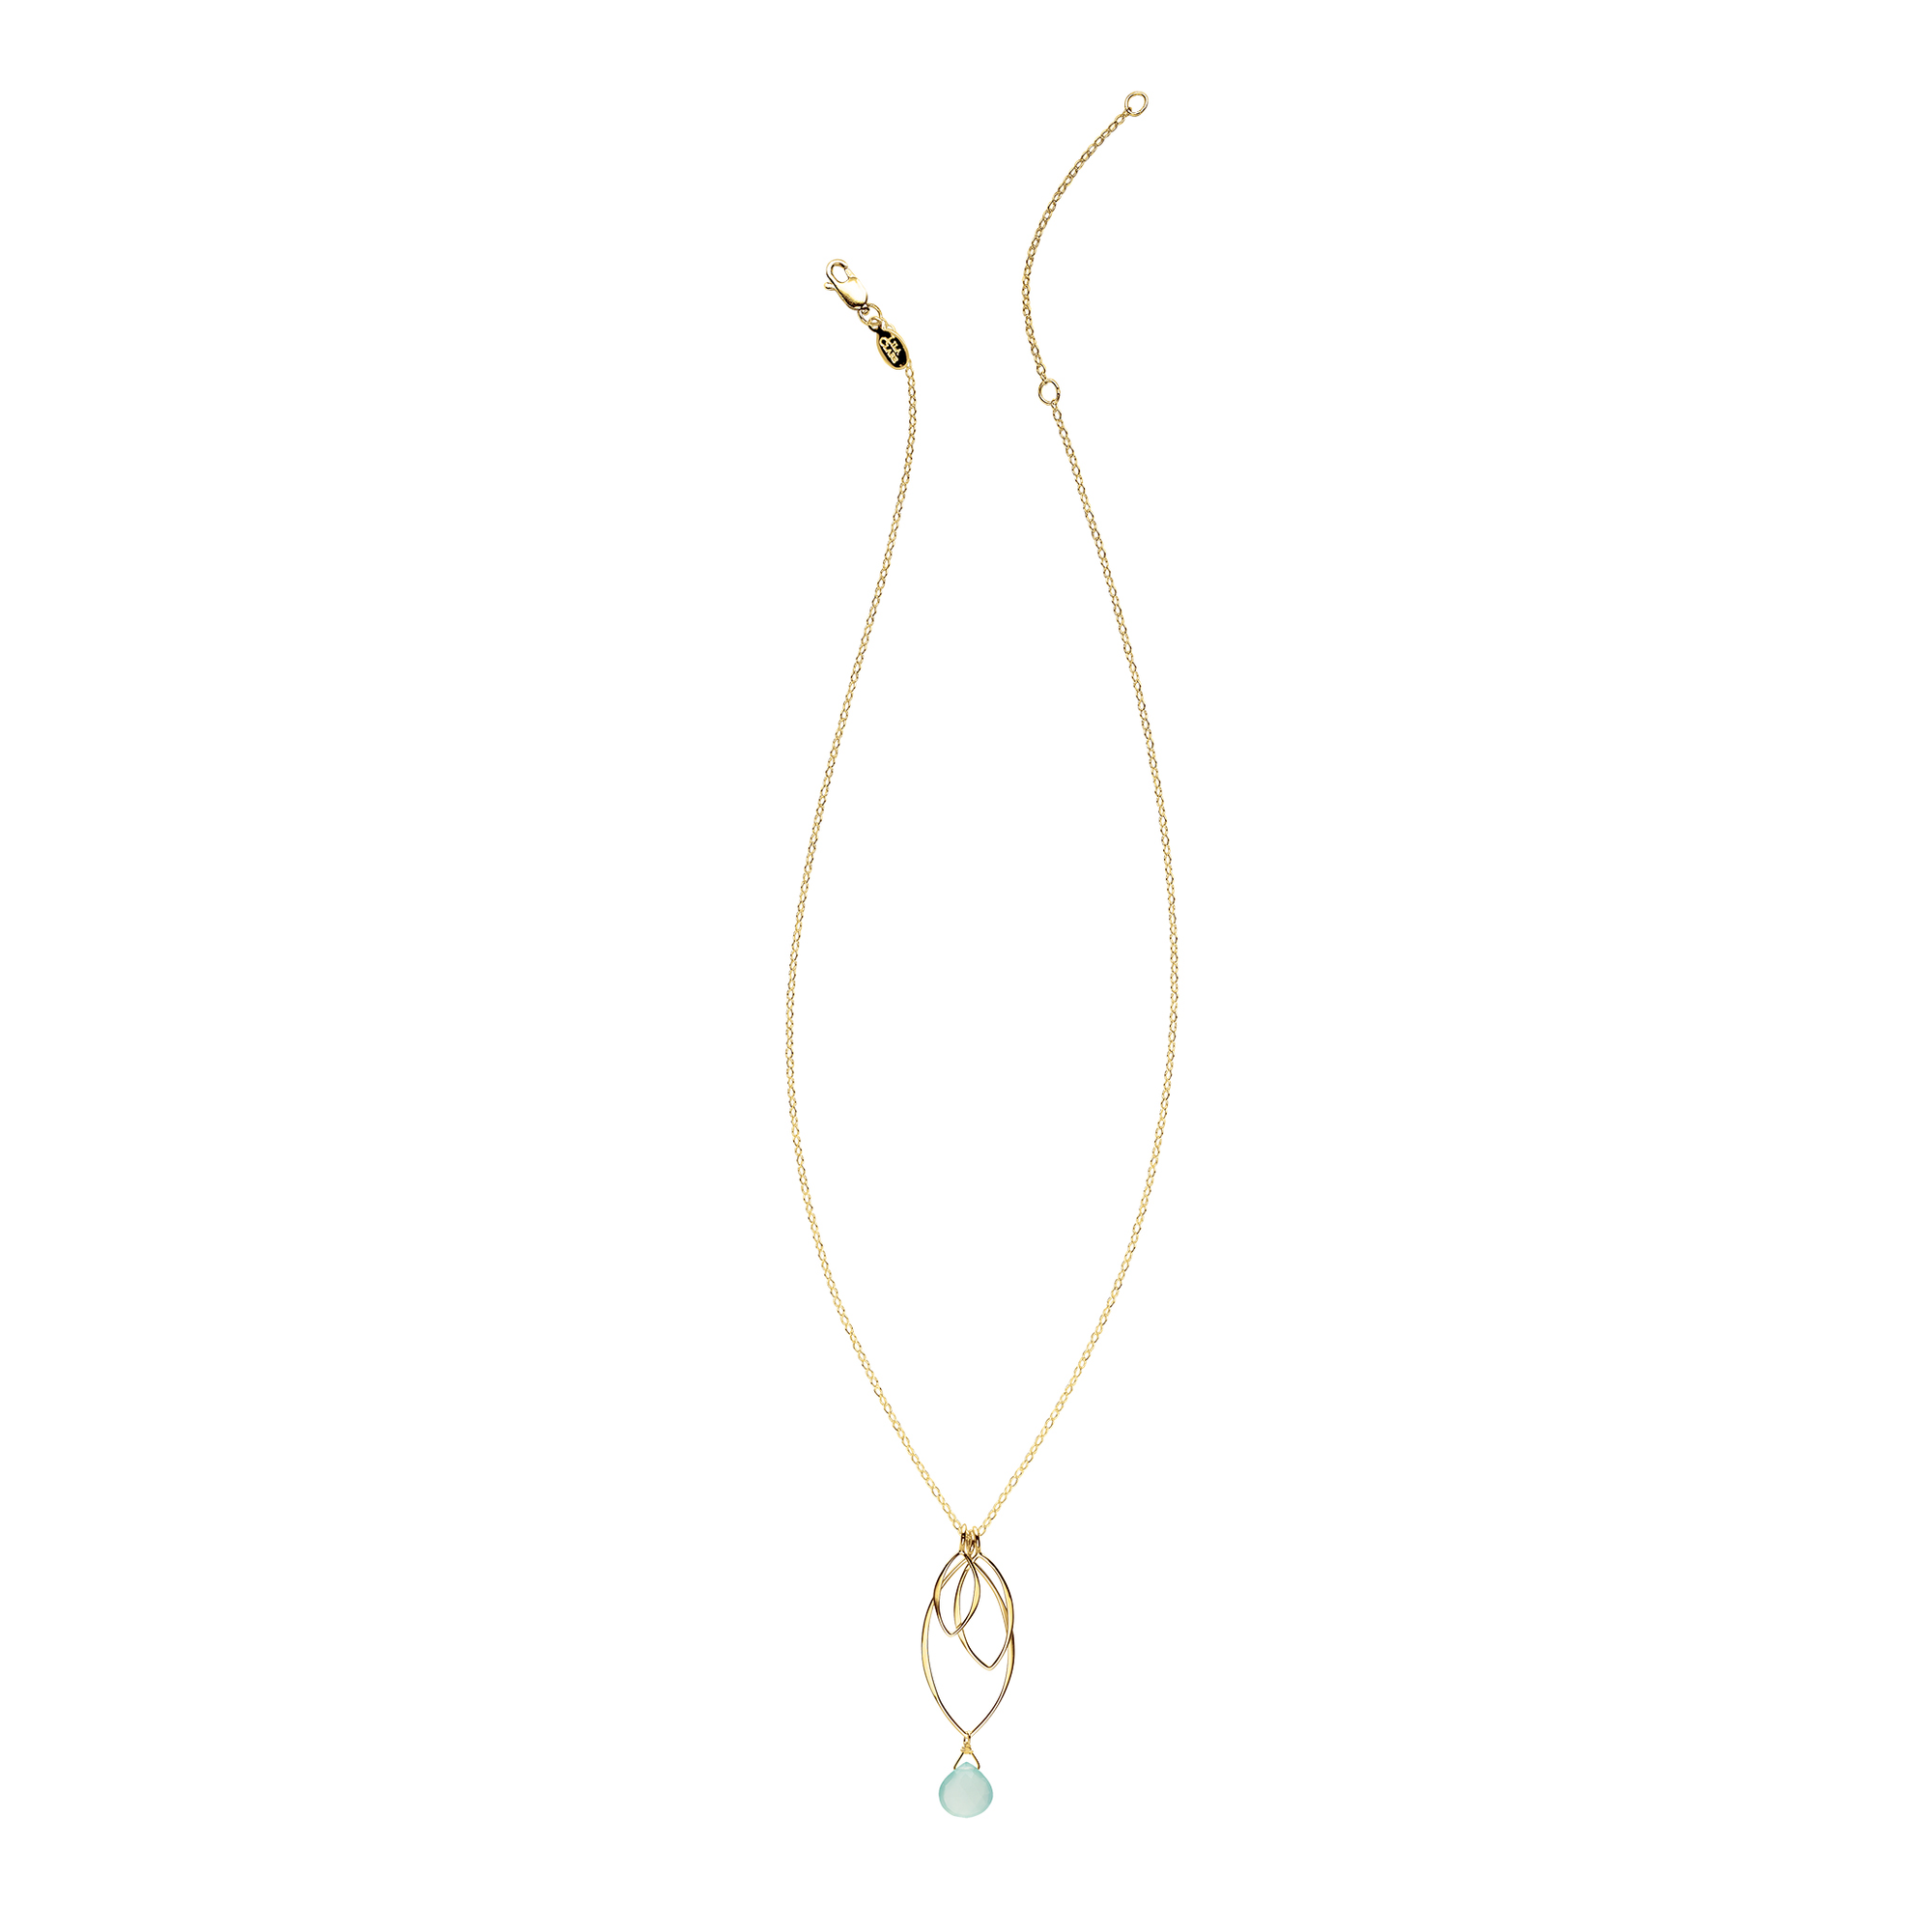 Ella Gold Medium Leaf Fringe Necklace with Gemstone